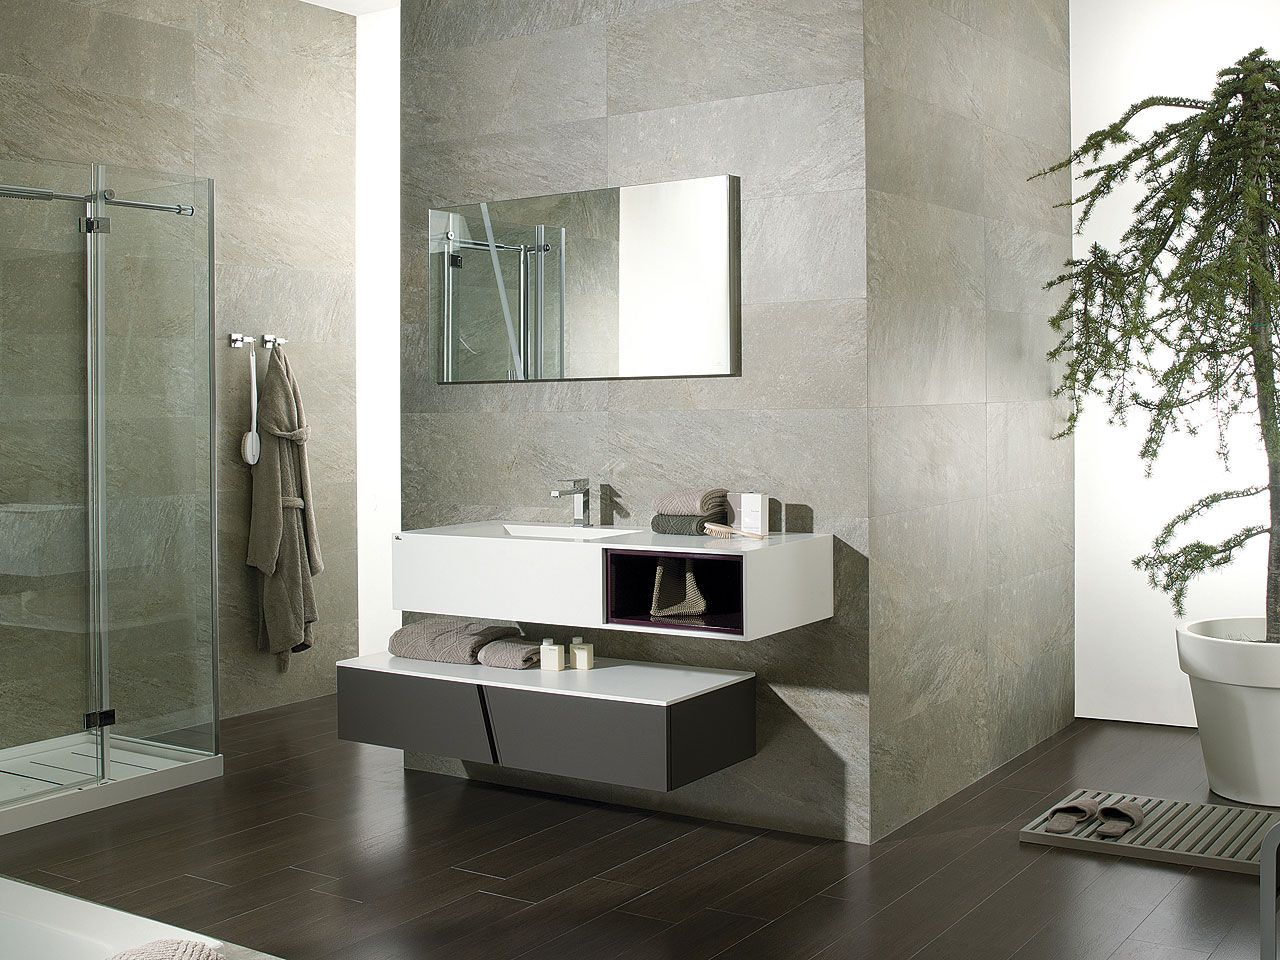 Porcelanosa Sinks Forma Retto Vessel Sink Vessel Sink Mesmerizing  # Mueble Next Porcelanosa